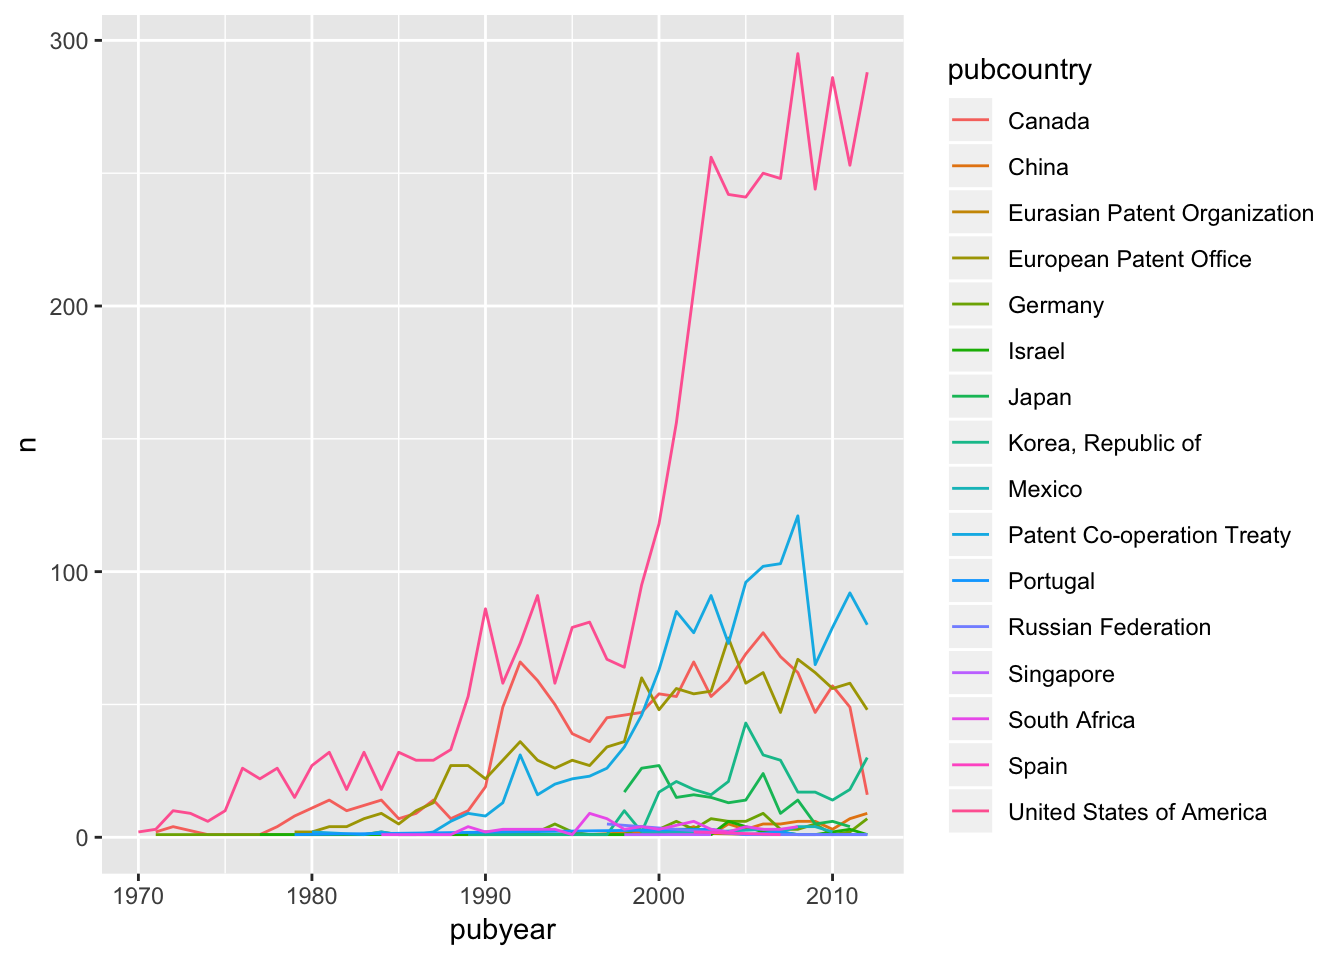 An Introduction to Plotly for Patent Analytics - Paul